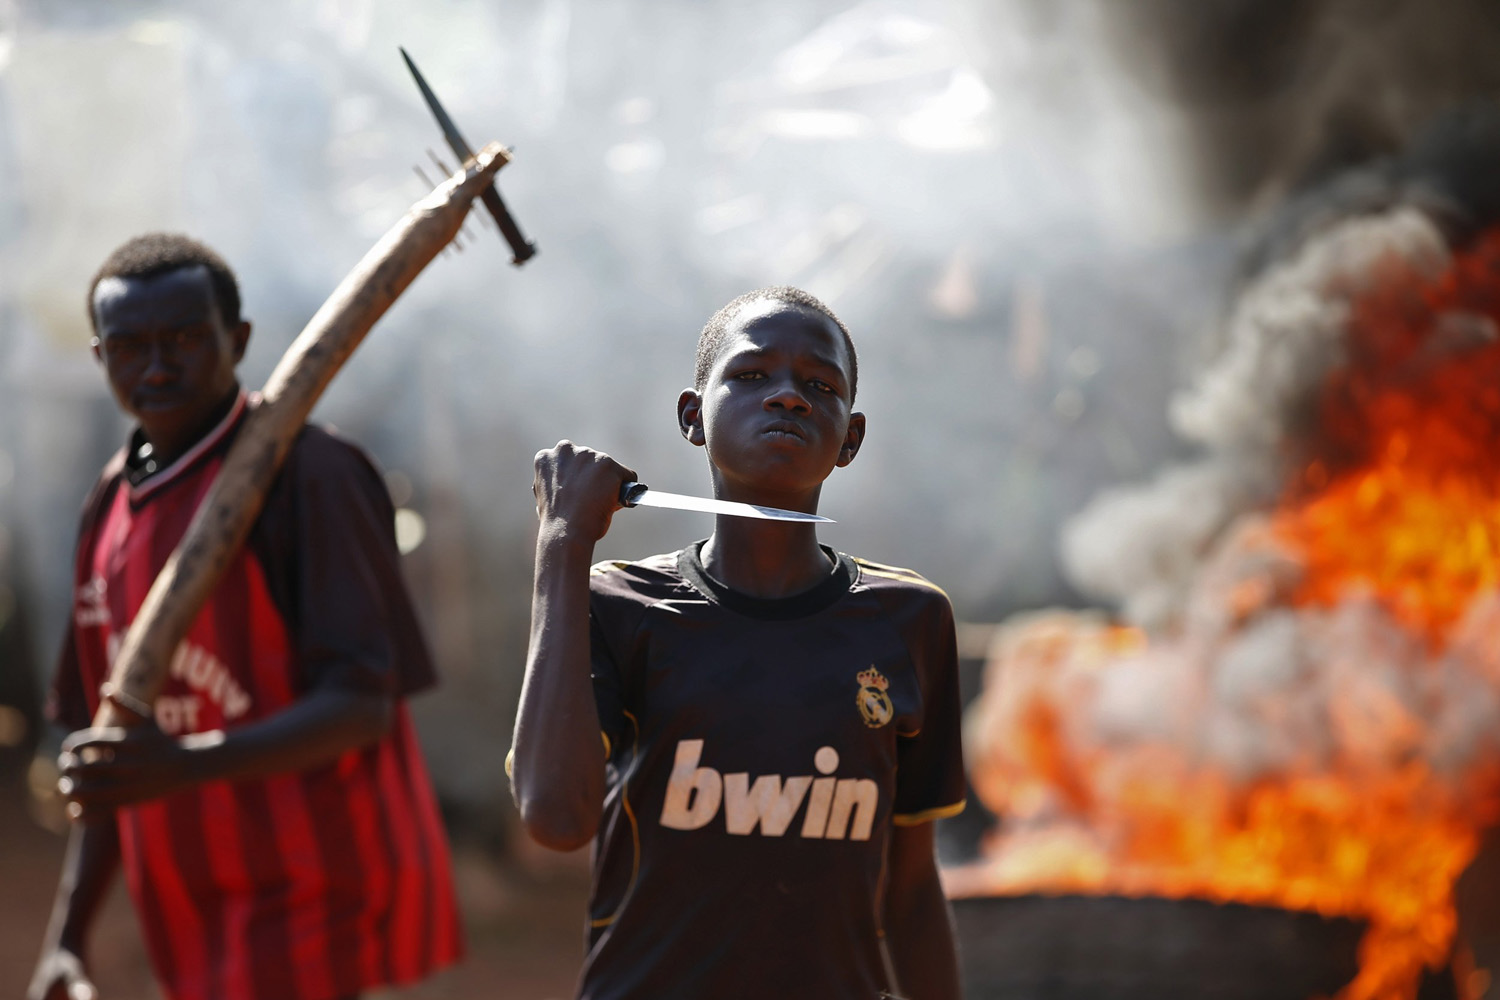 May 22, 2014. A boy gestures in front of a barricade on fire during a protest after French troops opened fire at protesters blocking a road in Bambari, Central African Republic.